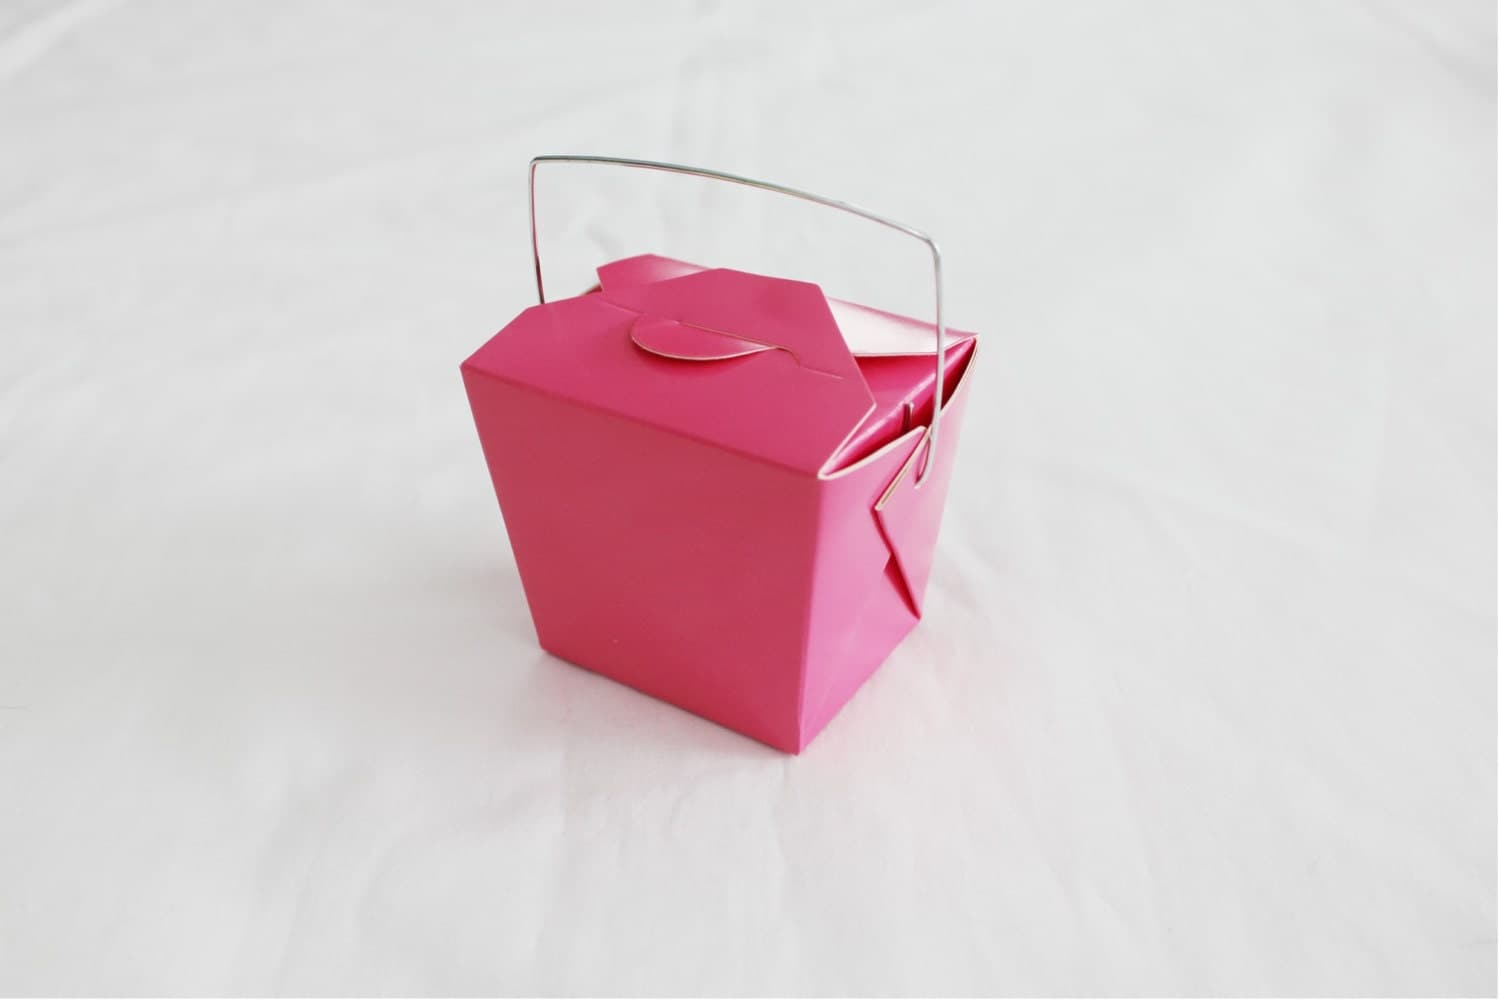 Party Favor Chinese Take Out Boxes : Small hot pink chinese take out boxes for party favors or